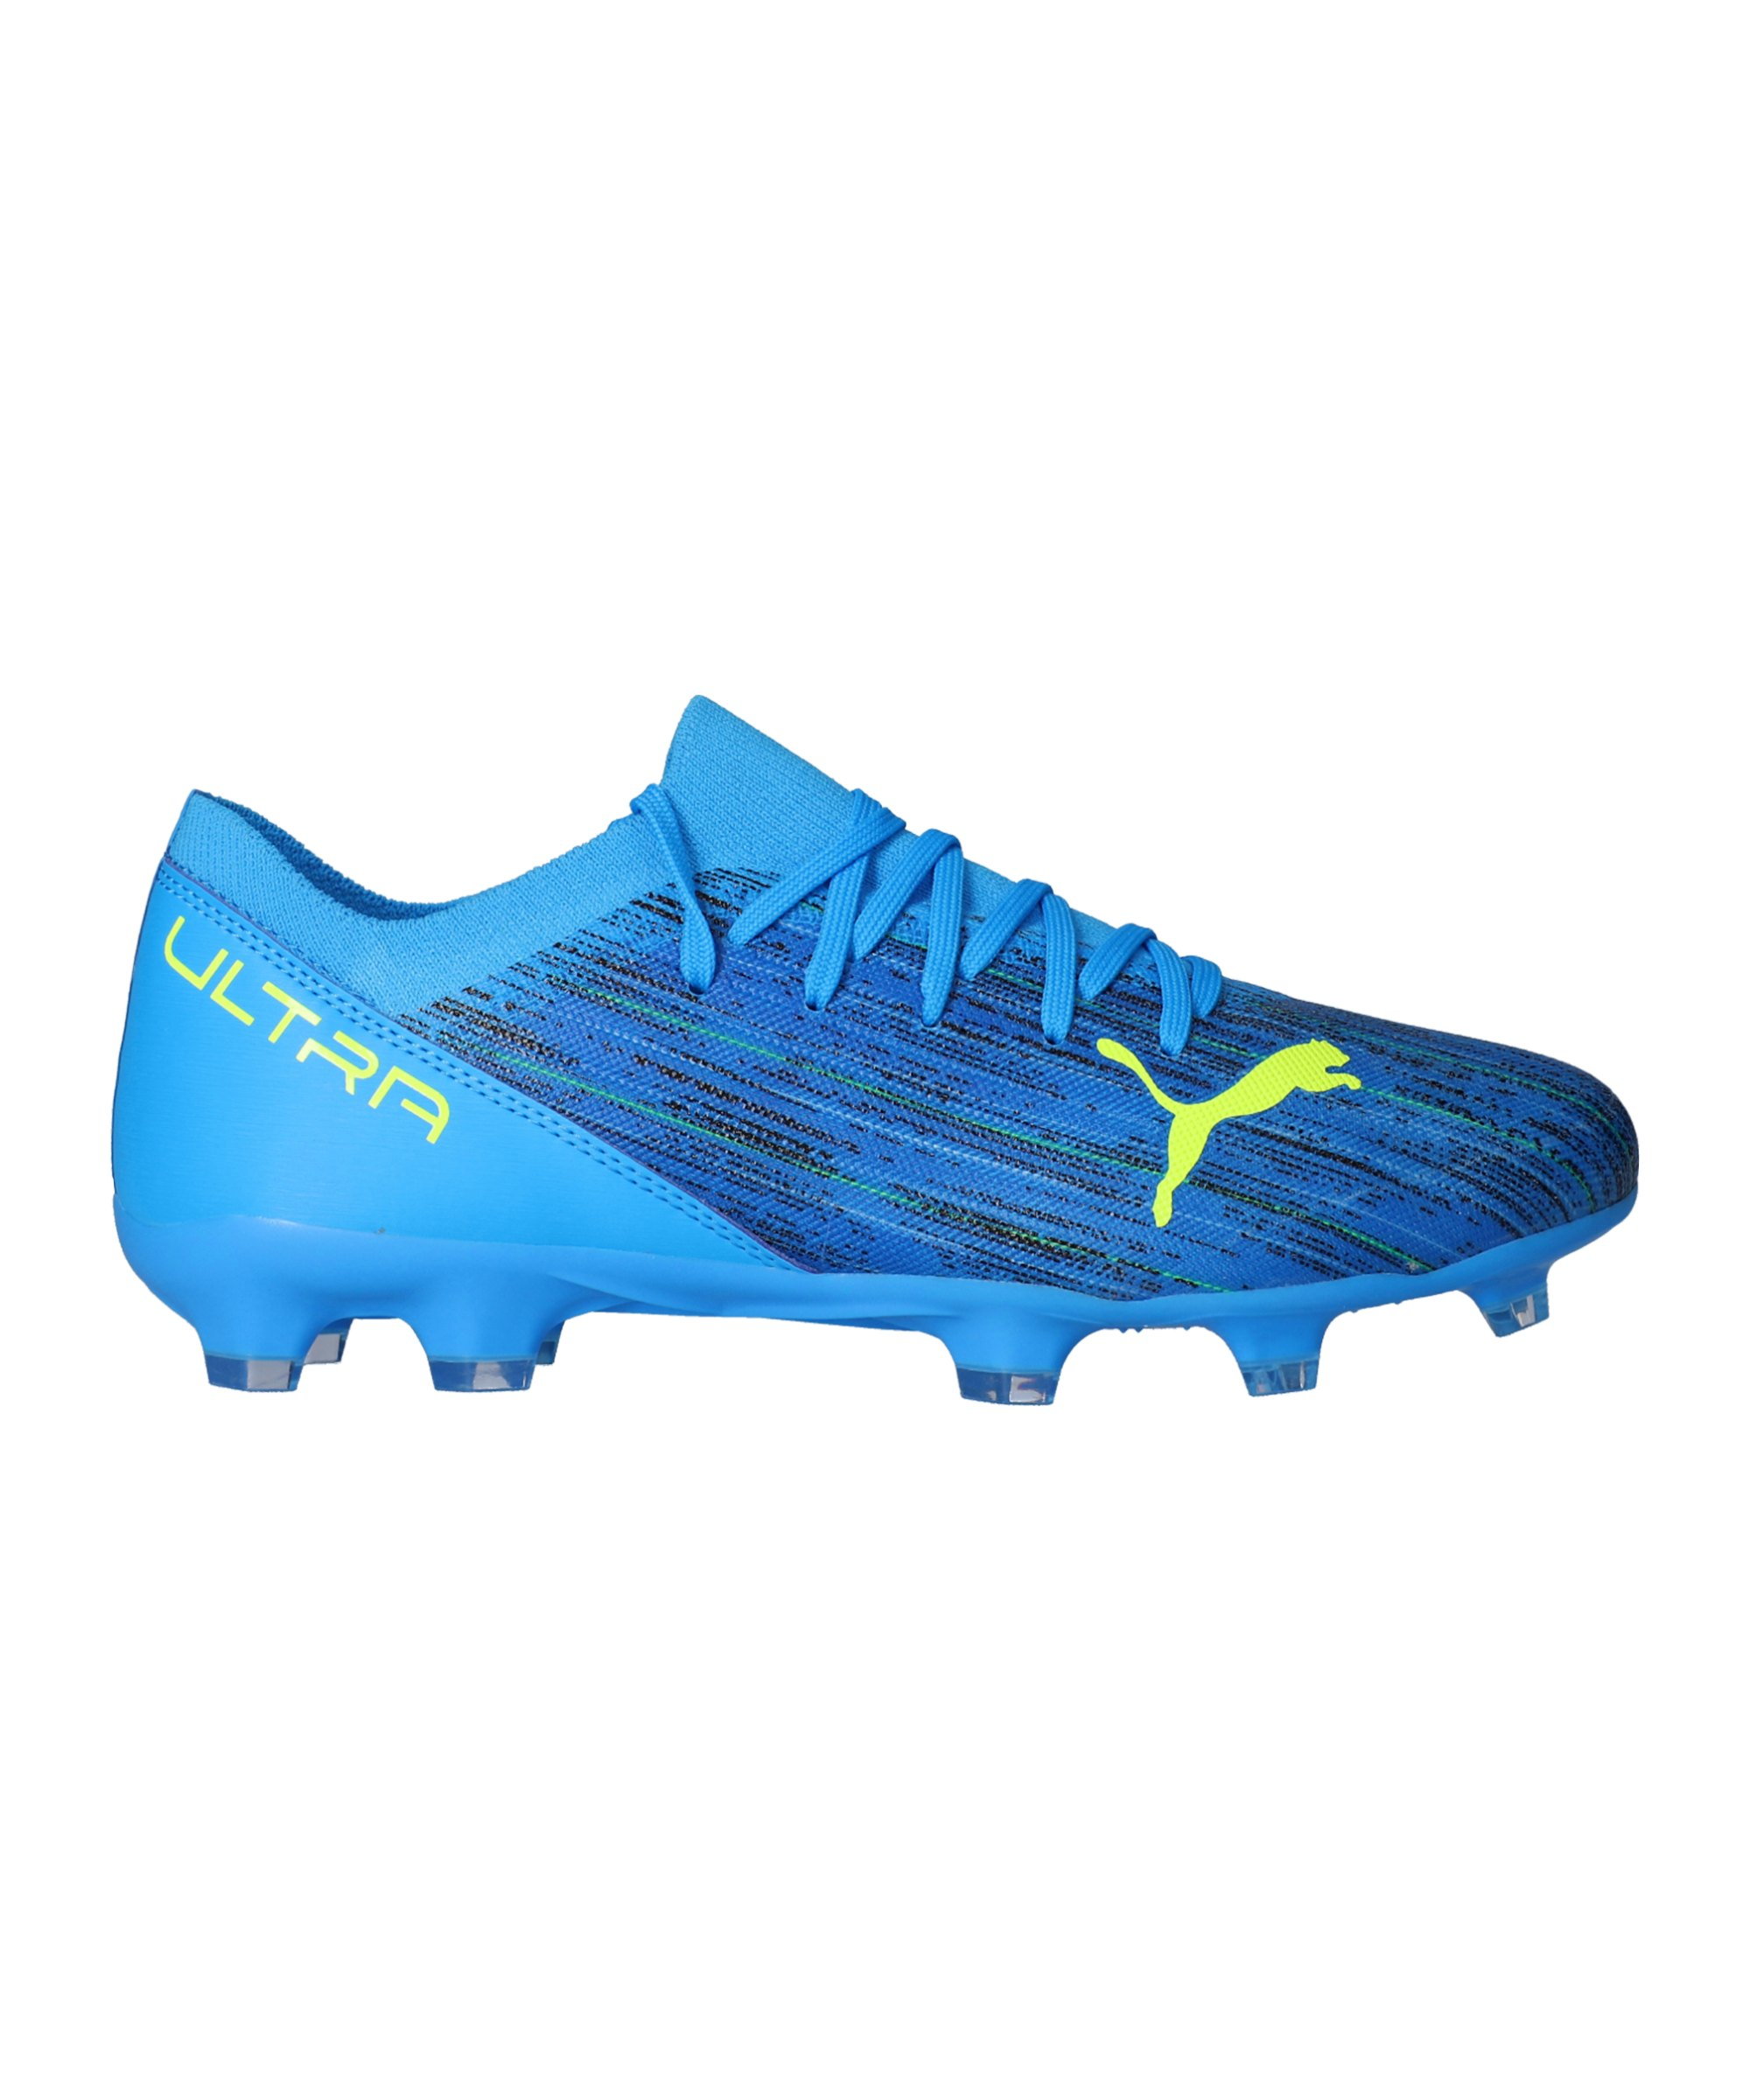 PUMA ULTRA Speed of Light 3.2 FG/AG Blau Gelb F01 - blau